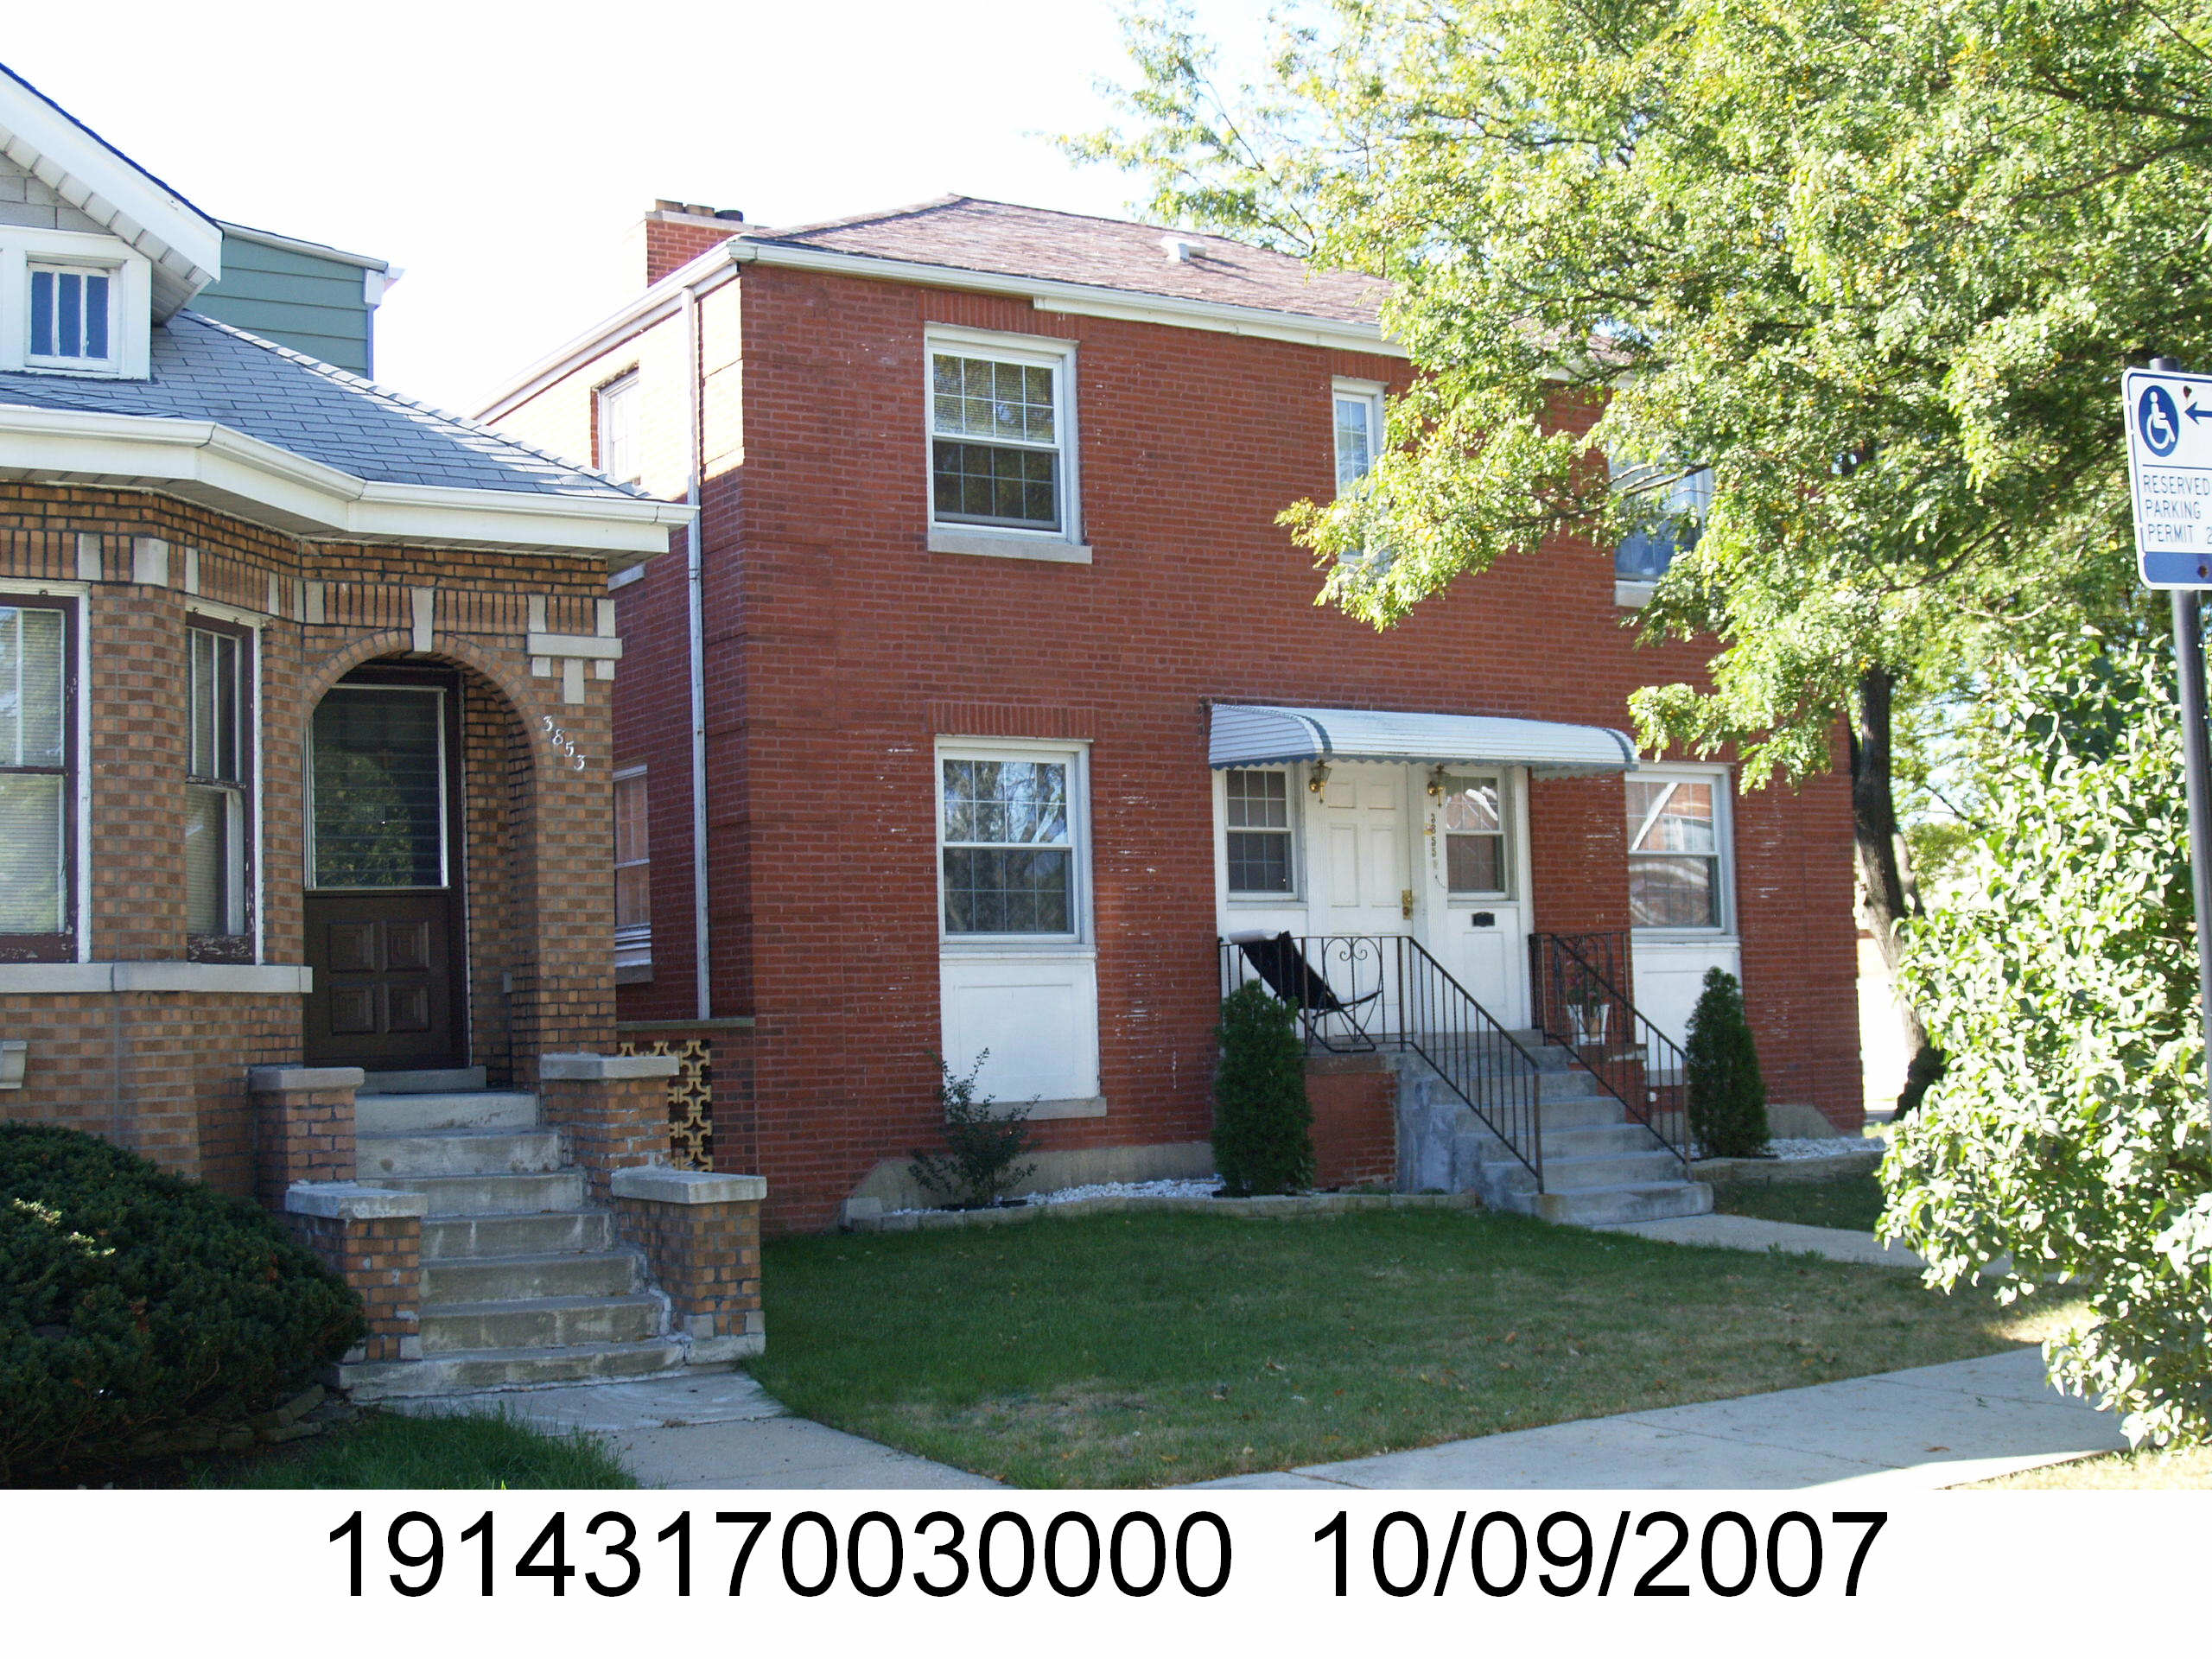 Property Tax Details - 3855 W 61st St, Chicago, IL - PIN ...